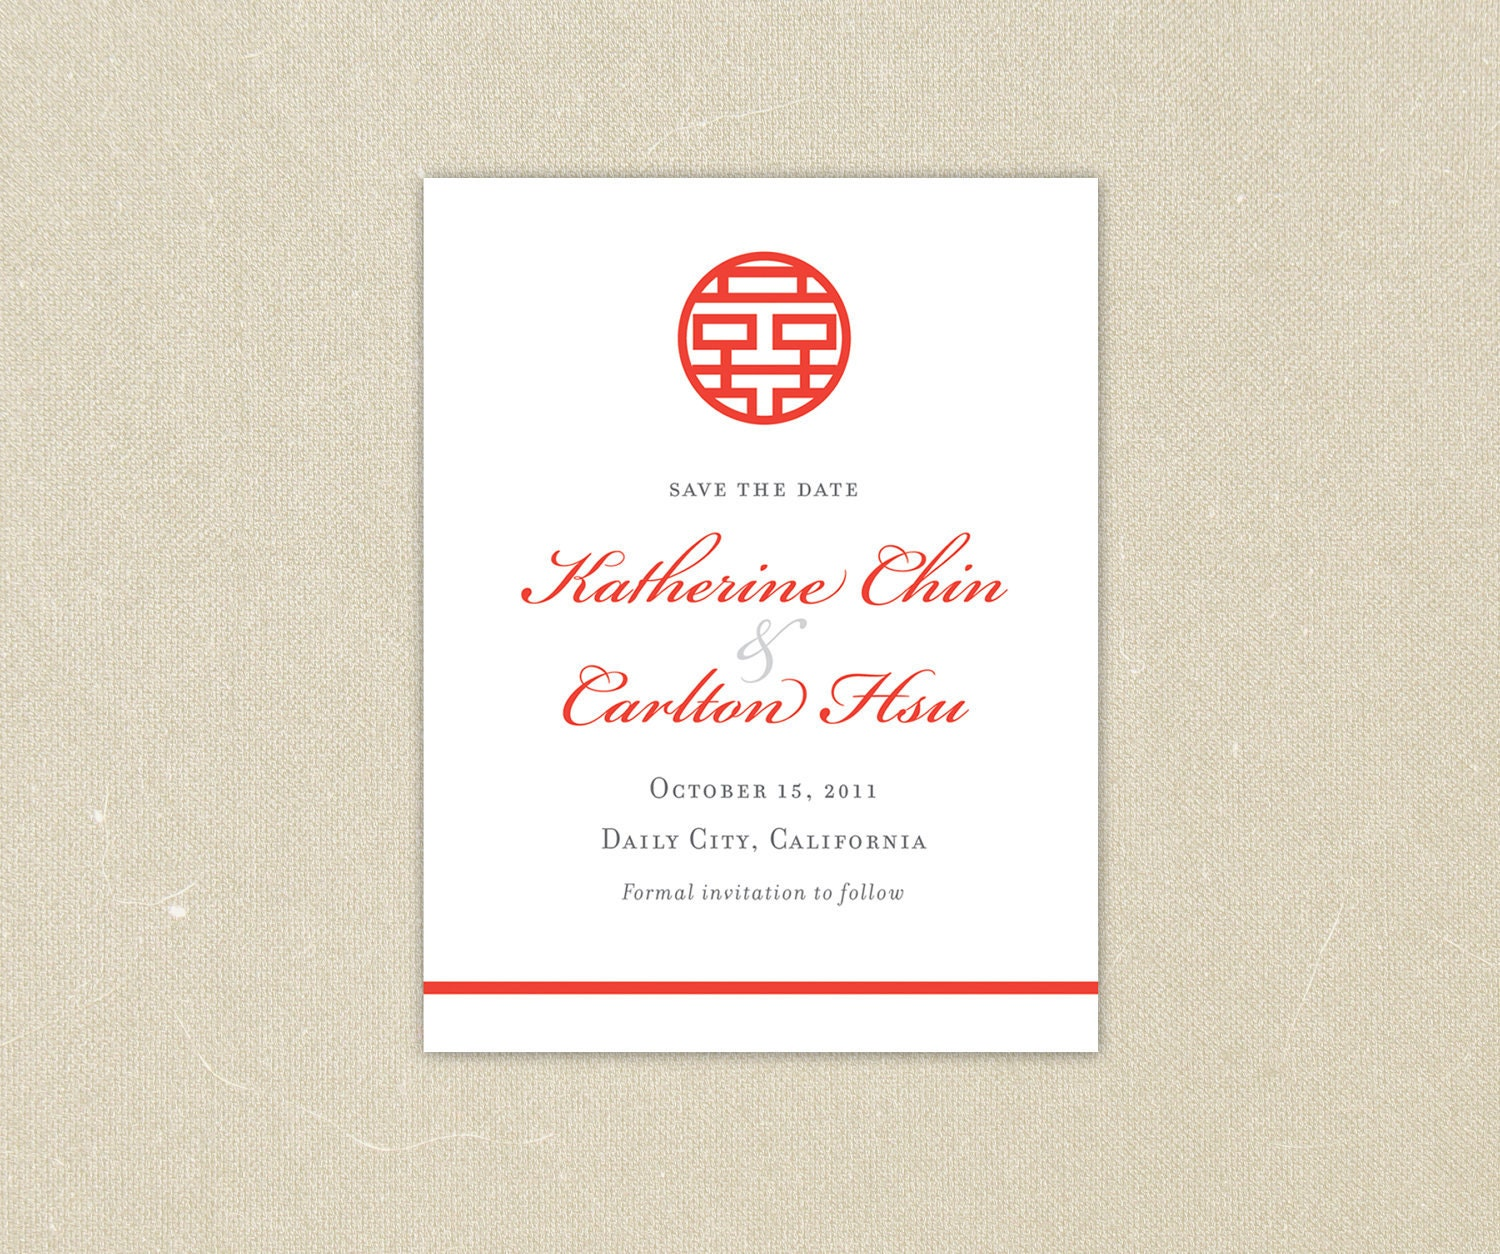 Wedding invitations red double happiness chinese wedding for Chinese wedding invitations etsy